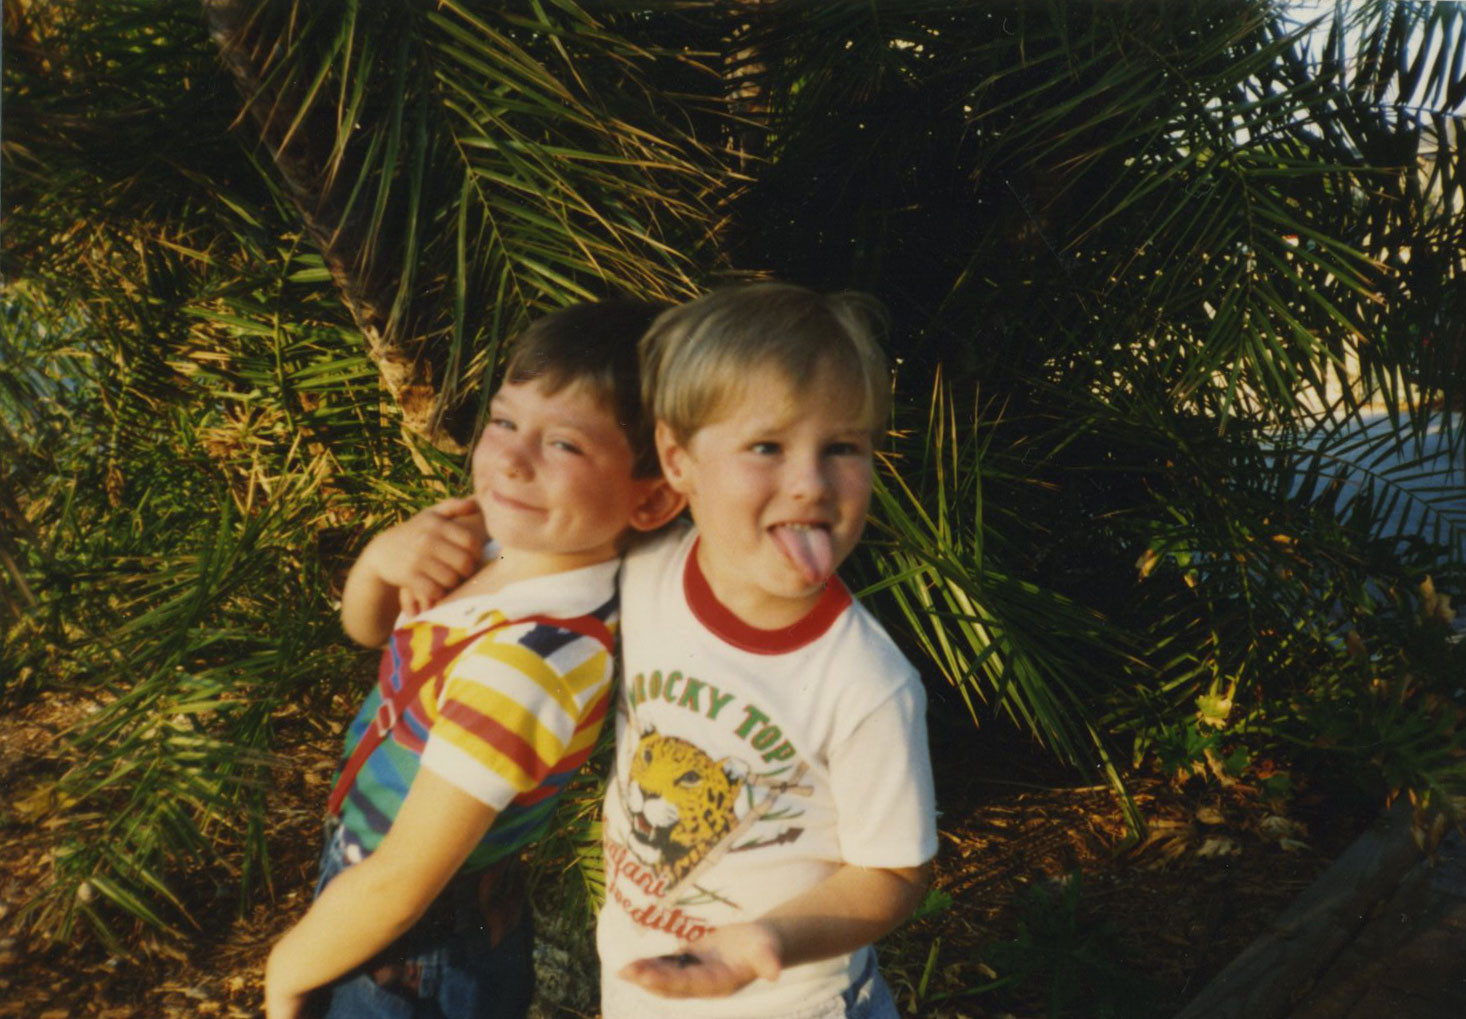 That's my big brother on the left. I'm the one sporting the jaguar t-shirt.